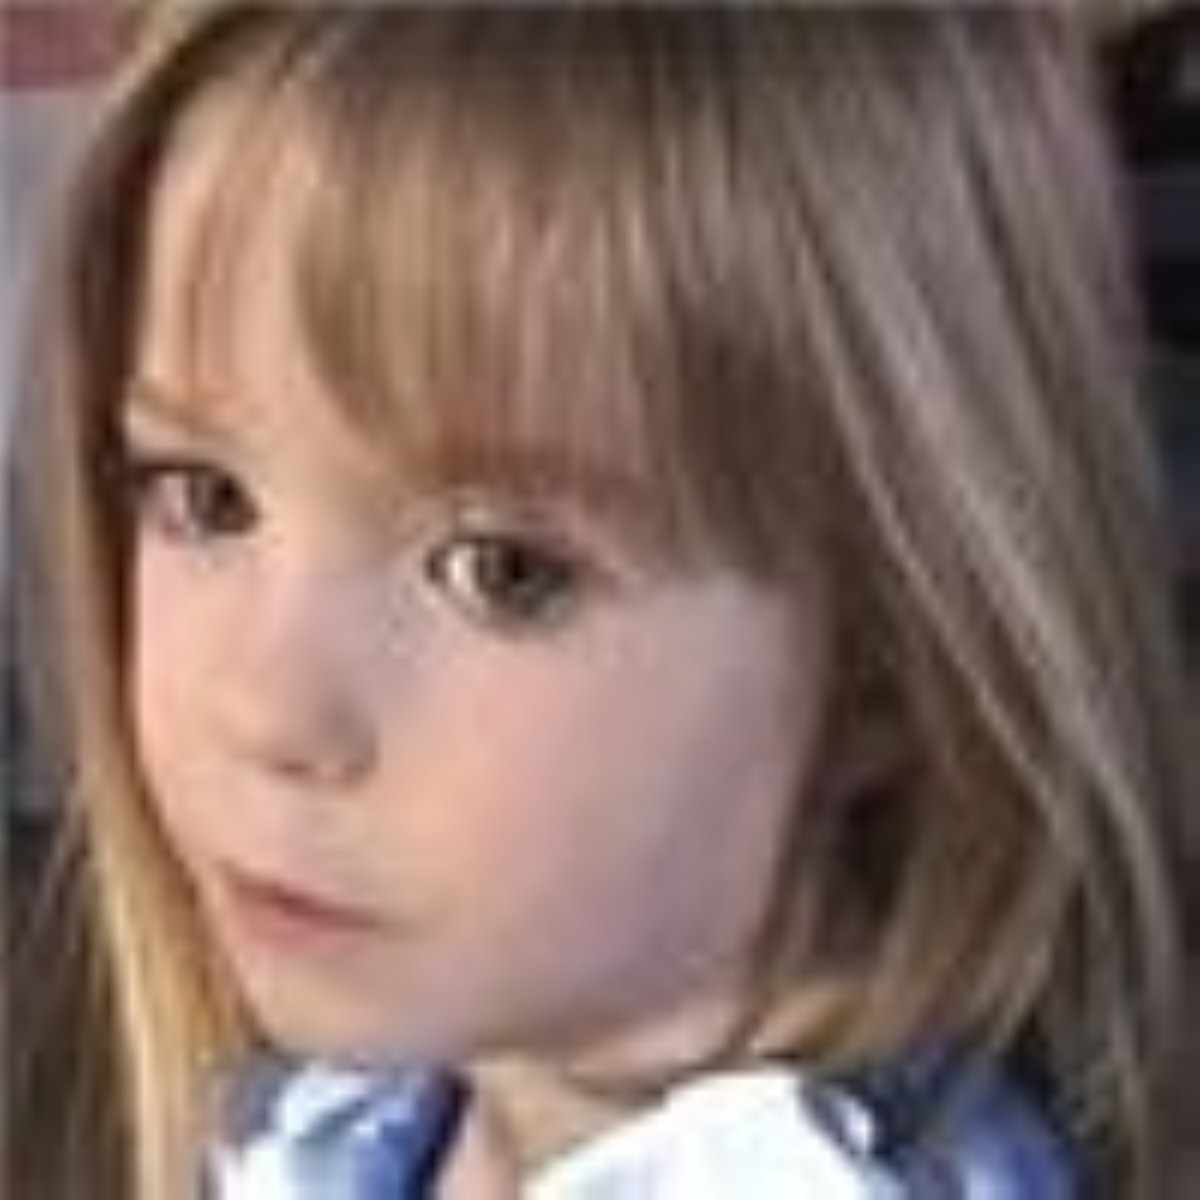 Scotland Yard will review the Maddie case